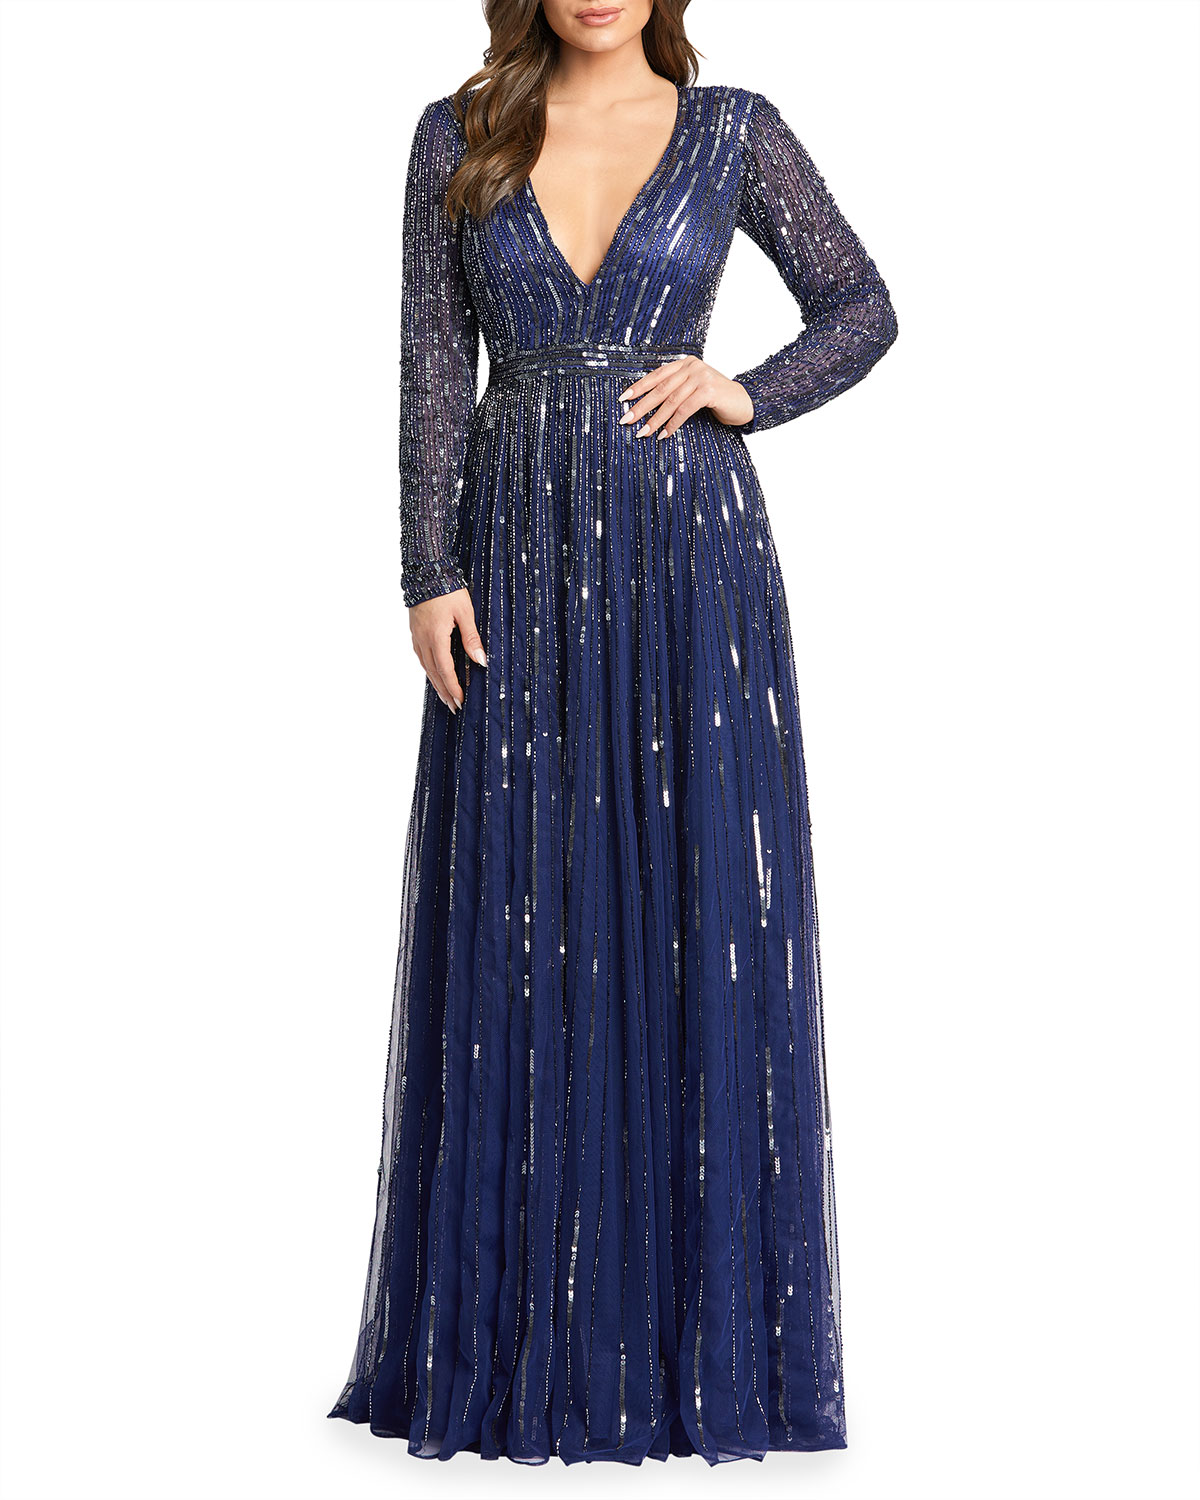 Mac Duggal Vertical Sequin Long-Sleeve V-Neck Gown